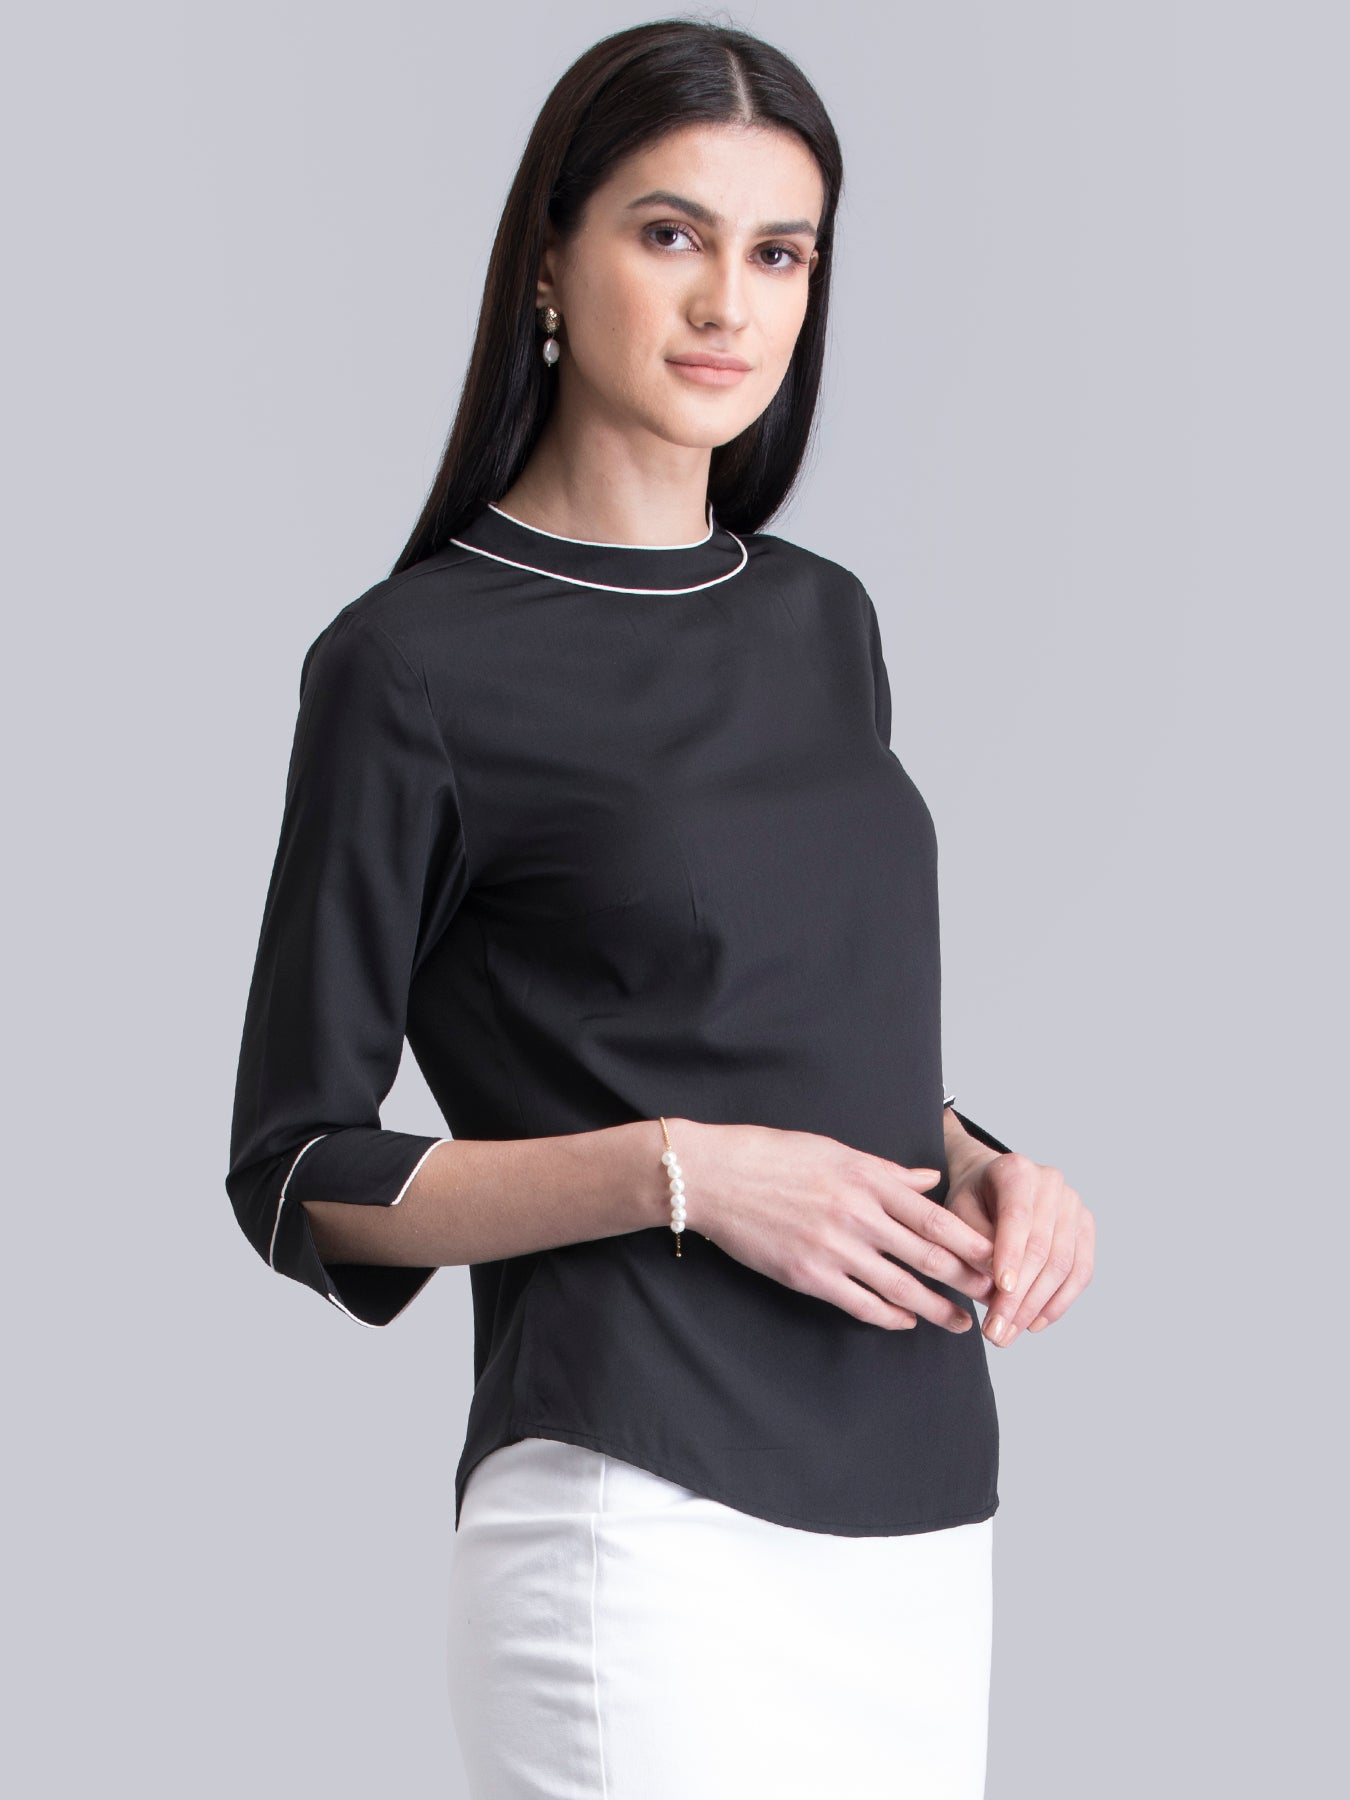 Crew Neck Colour Block Top - Black and White